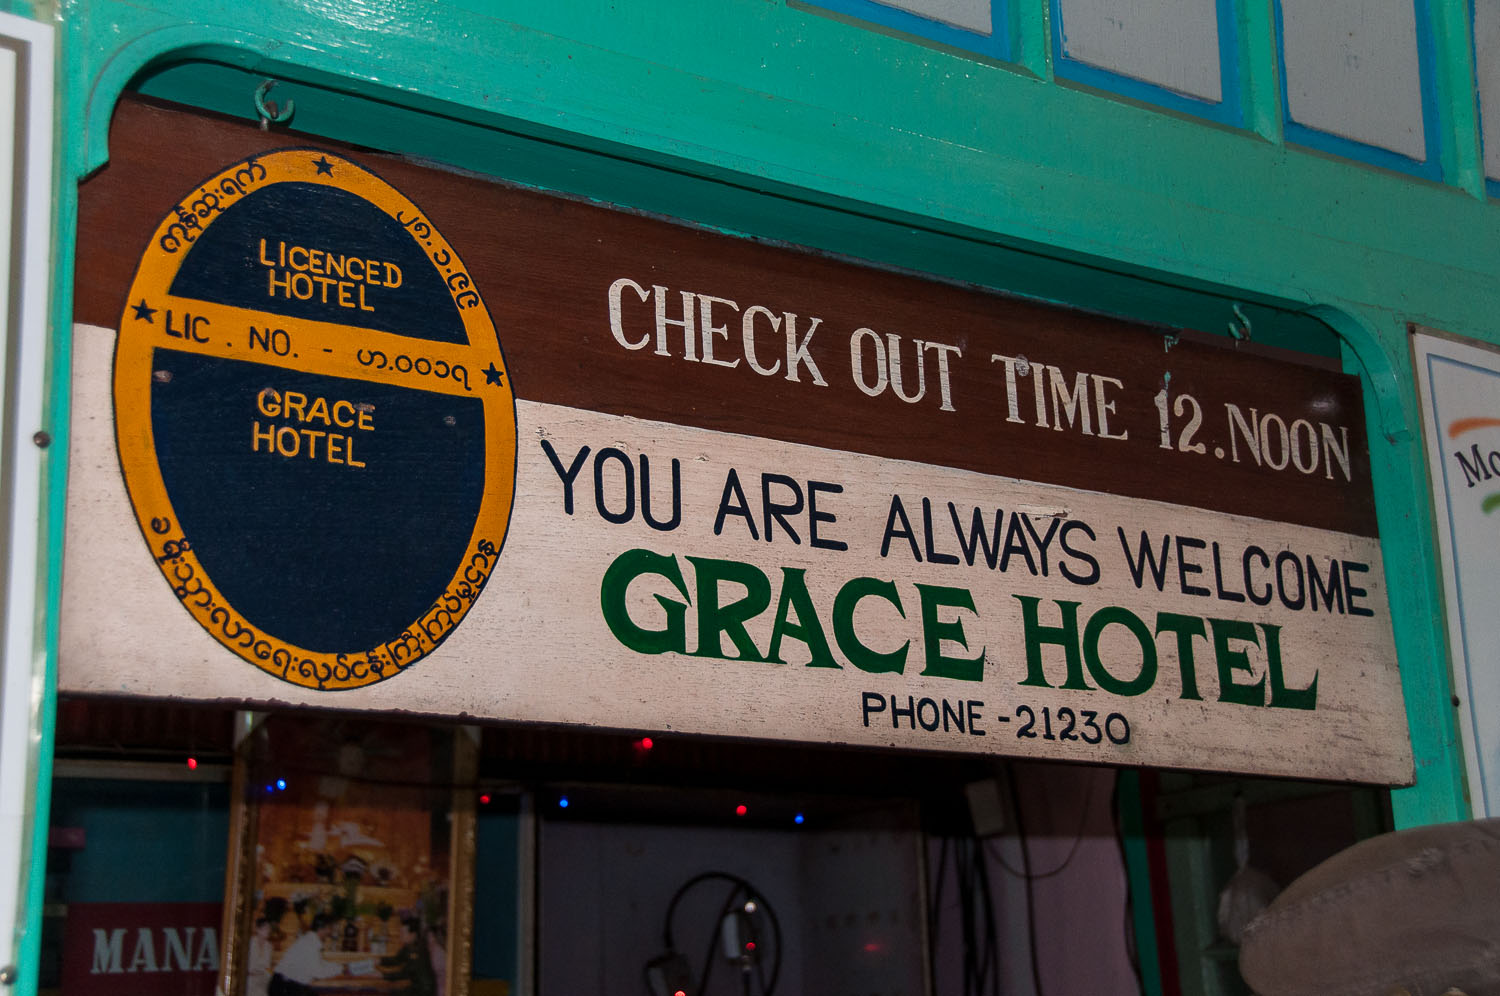 Grace hotel in Pyin Oo Lwin, Shan State.  The fonts remind me of Hitchcock films of the 50's and 60's.